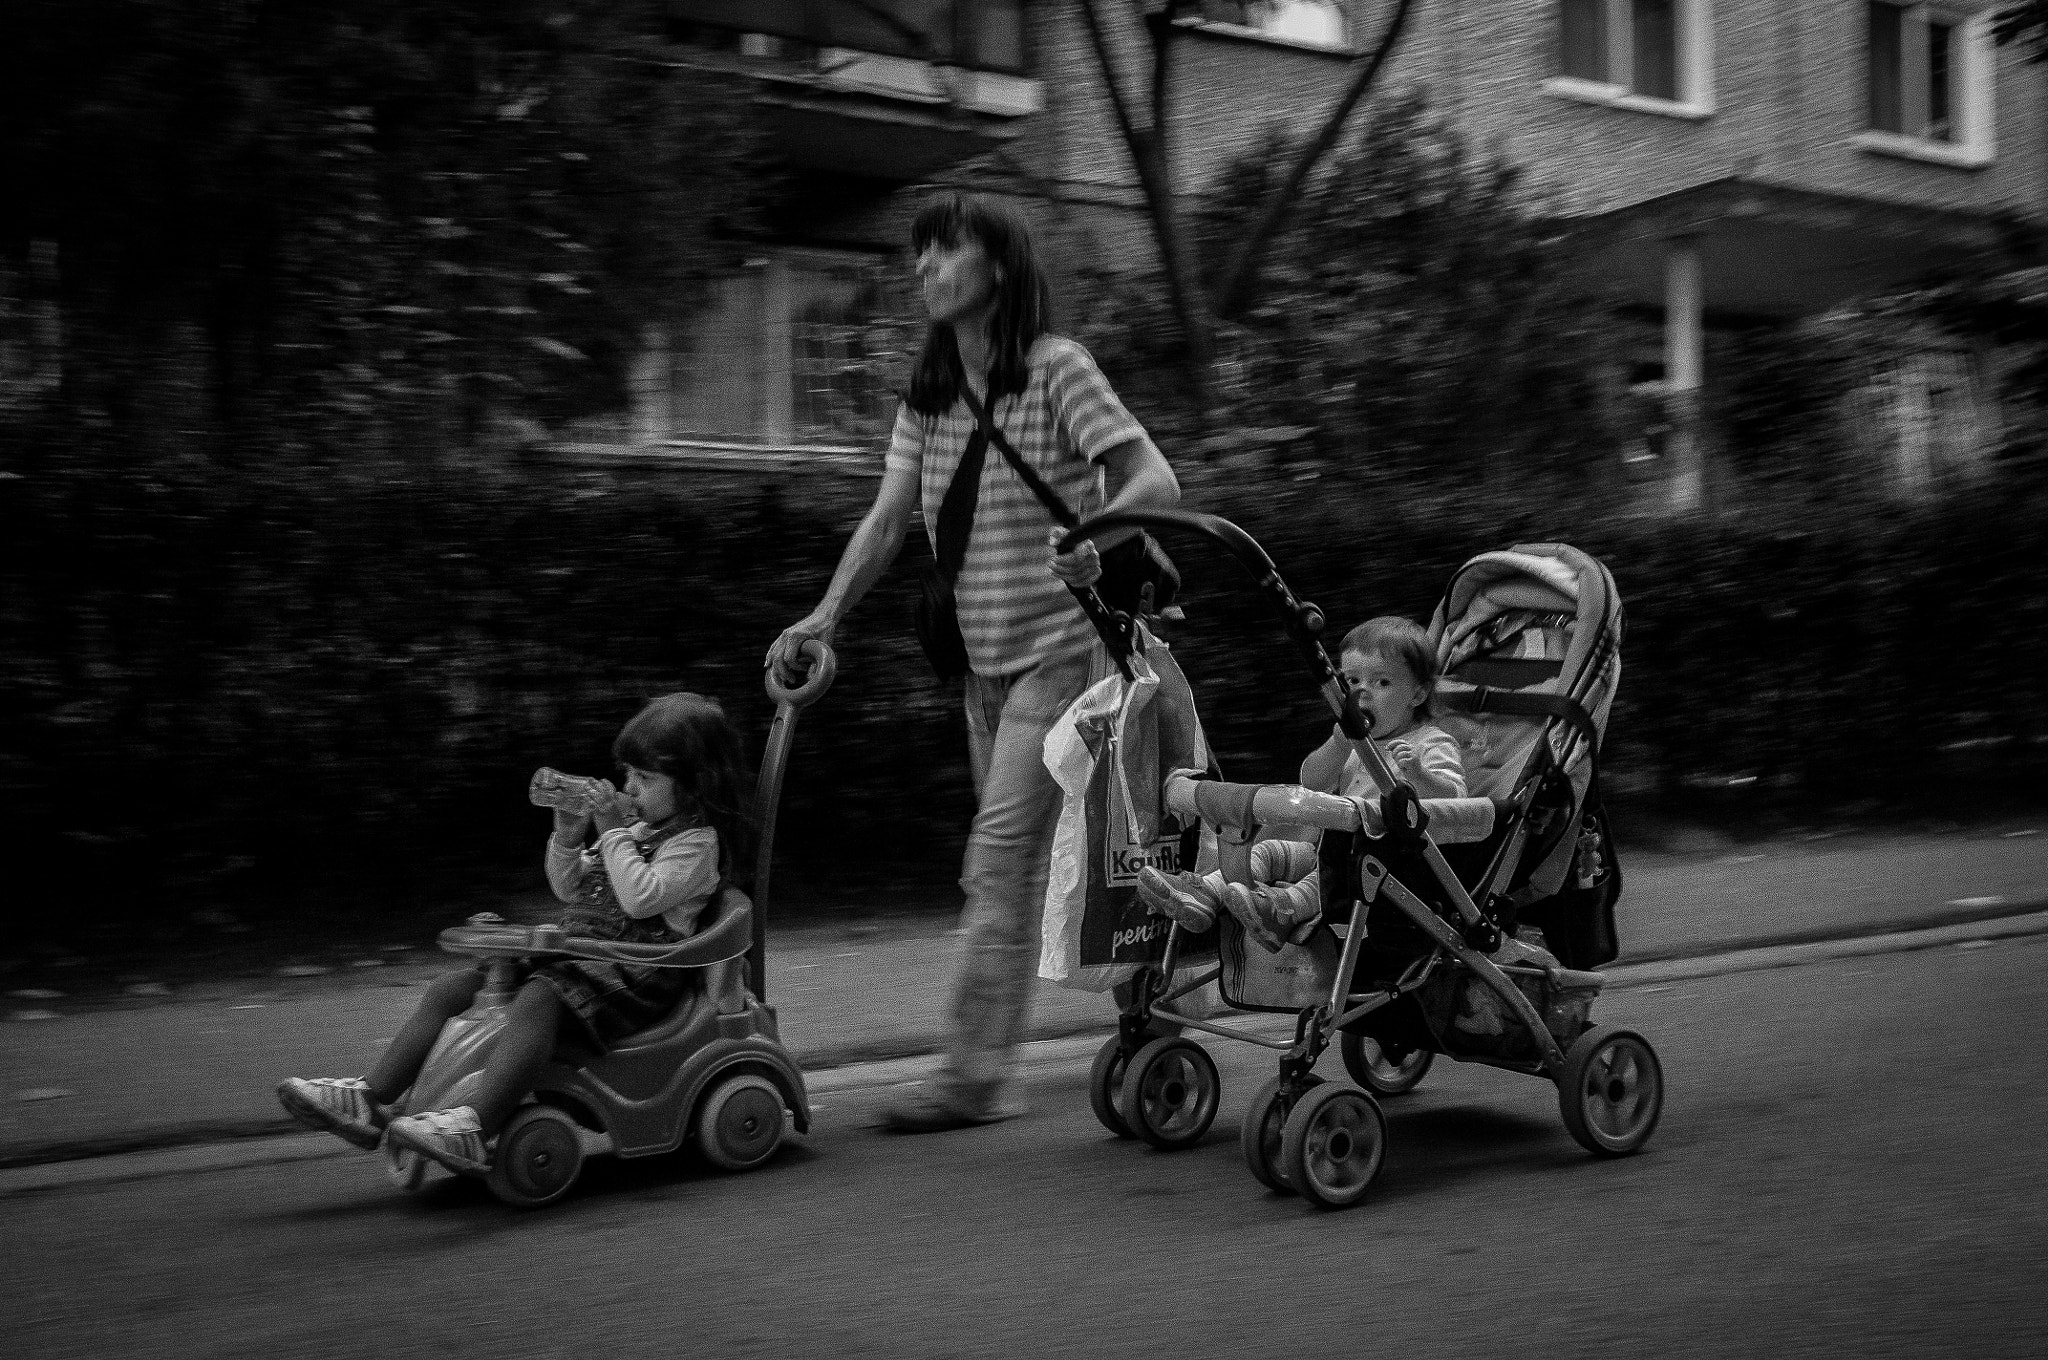 Photograph Mother and two children by Tiberiu Ichim on 500px